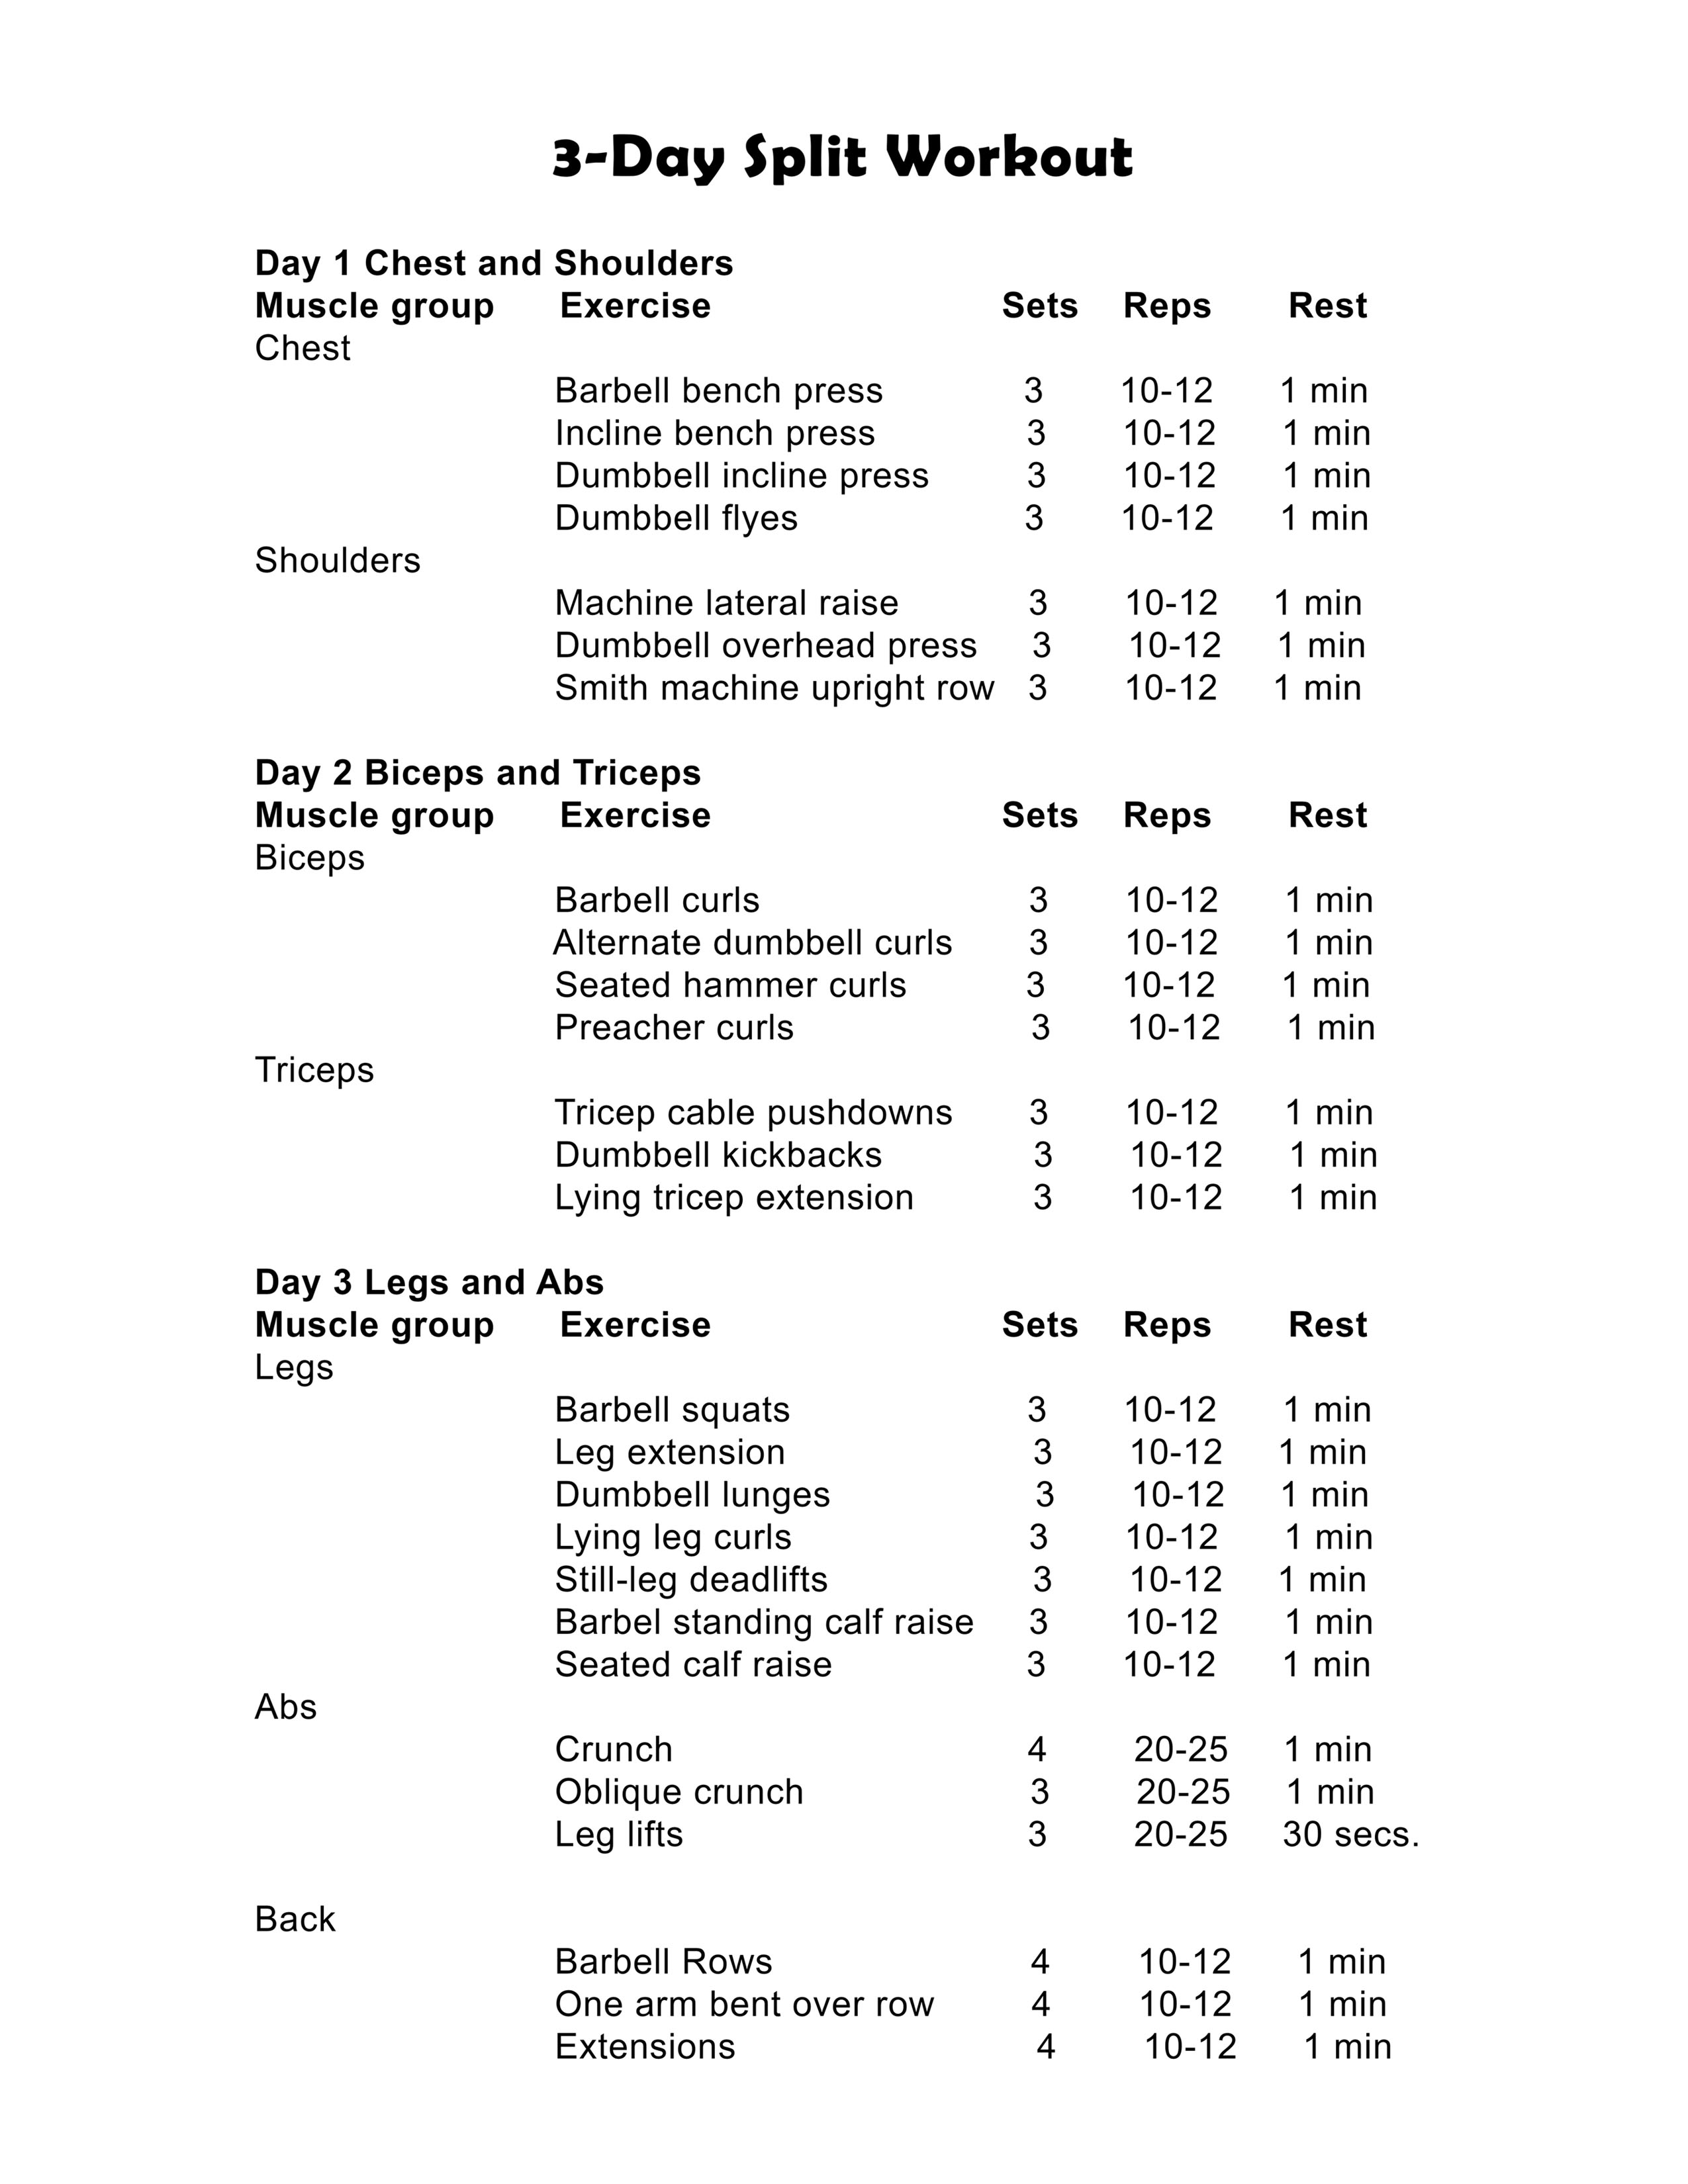 3 day split workout chart you can download and print.